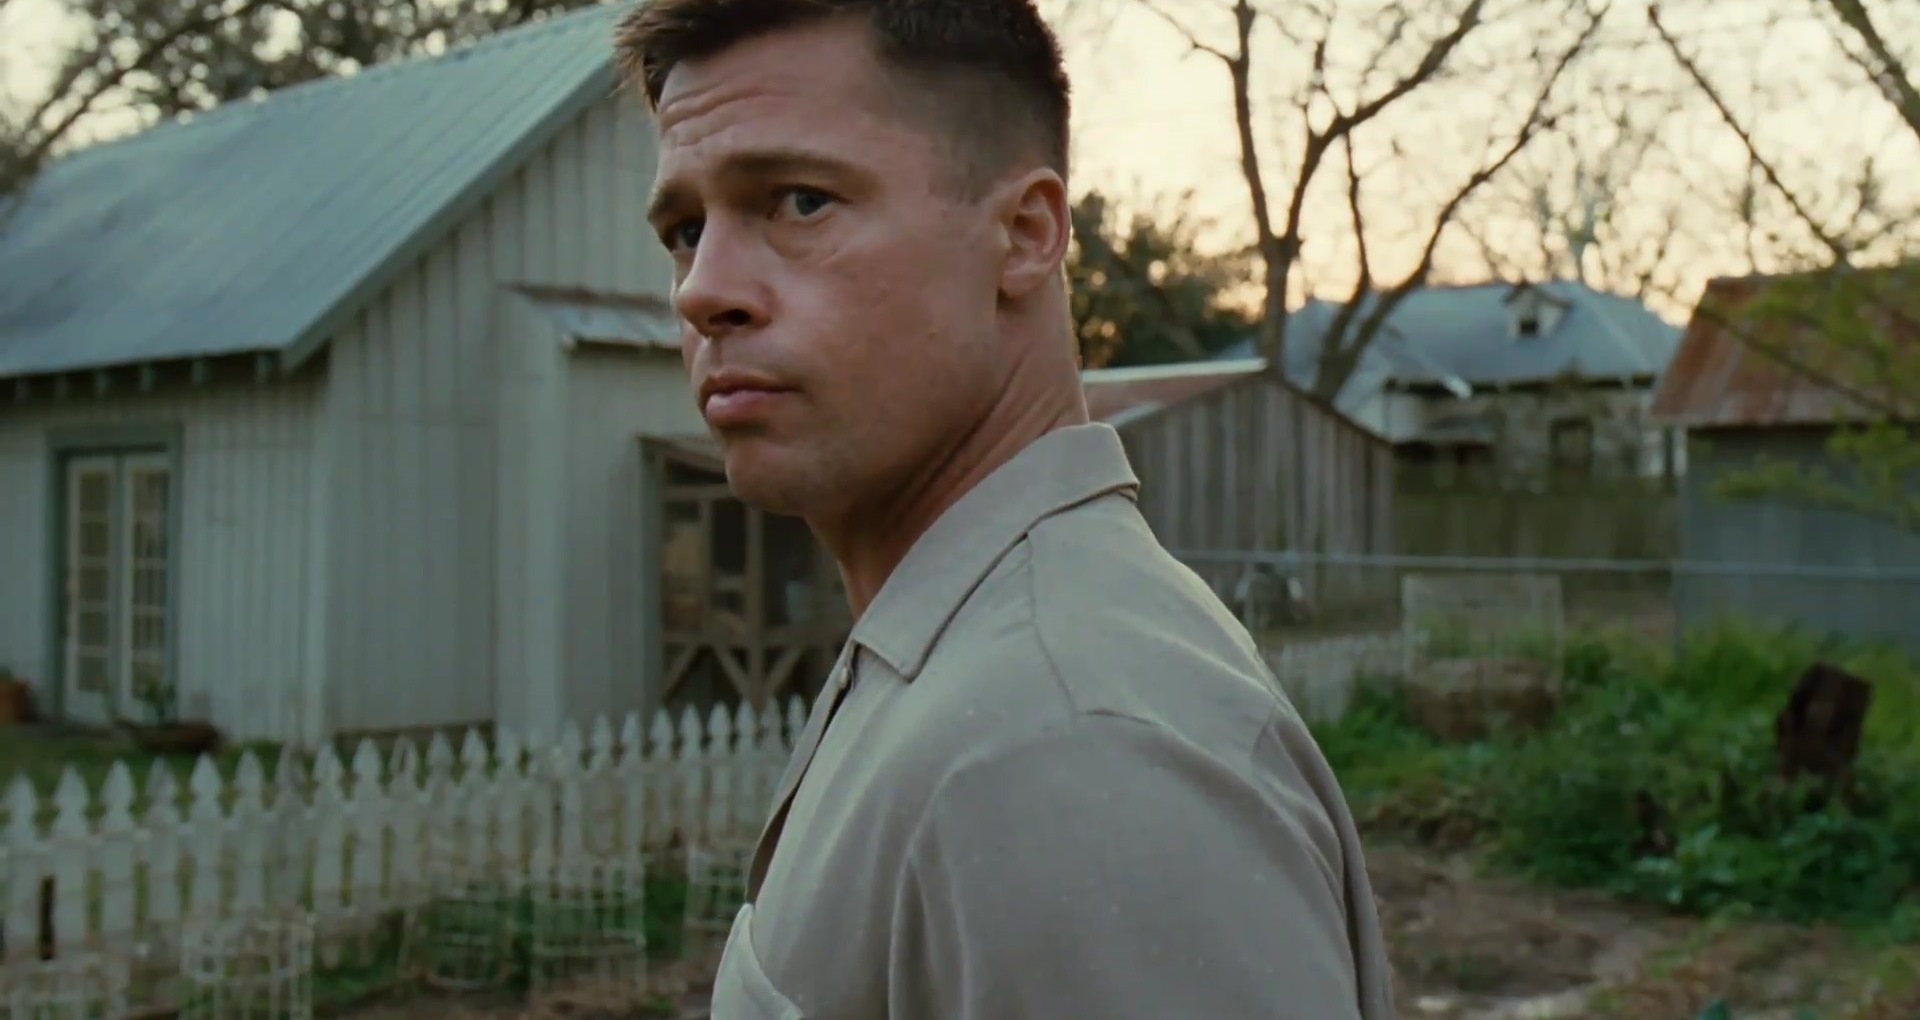 Brad Pitt as the father in The Tree of Life (2011)